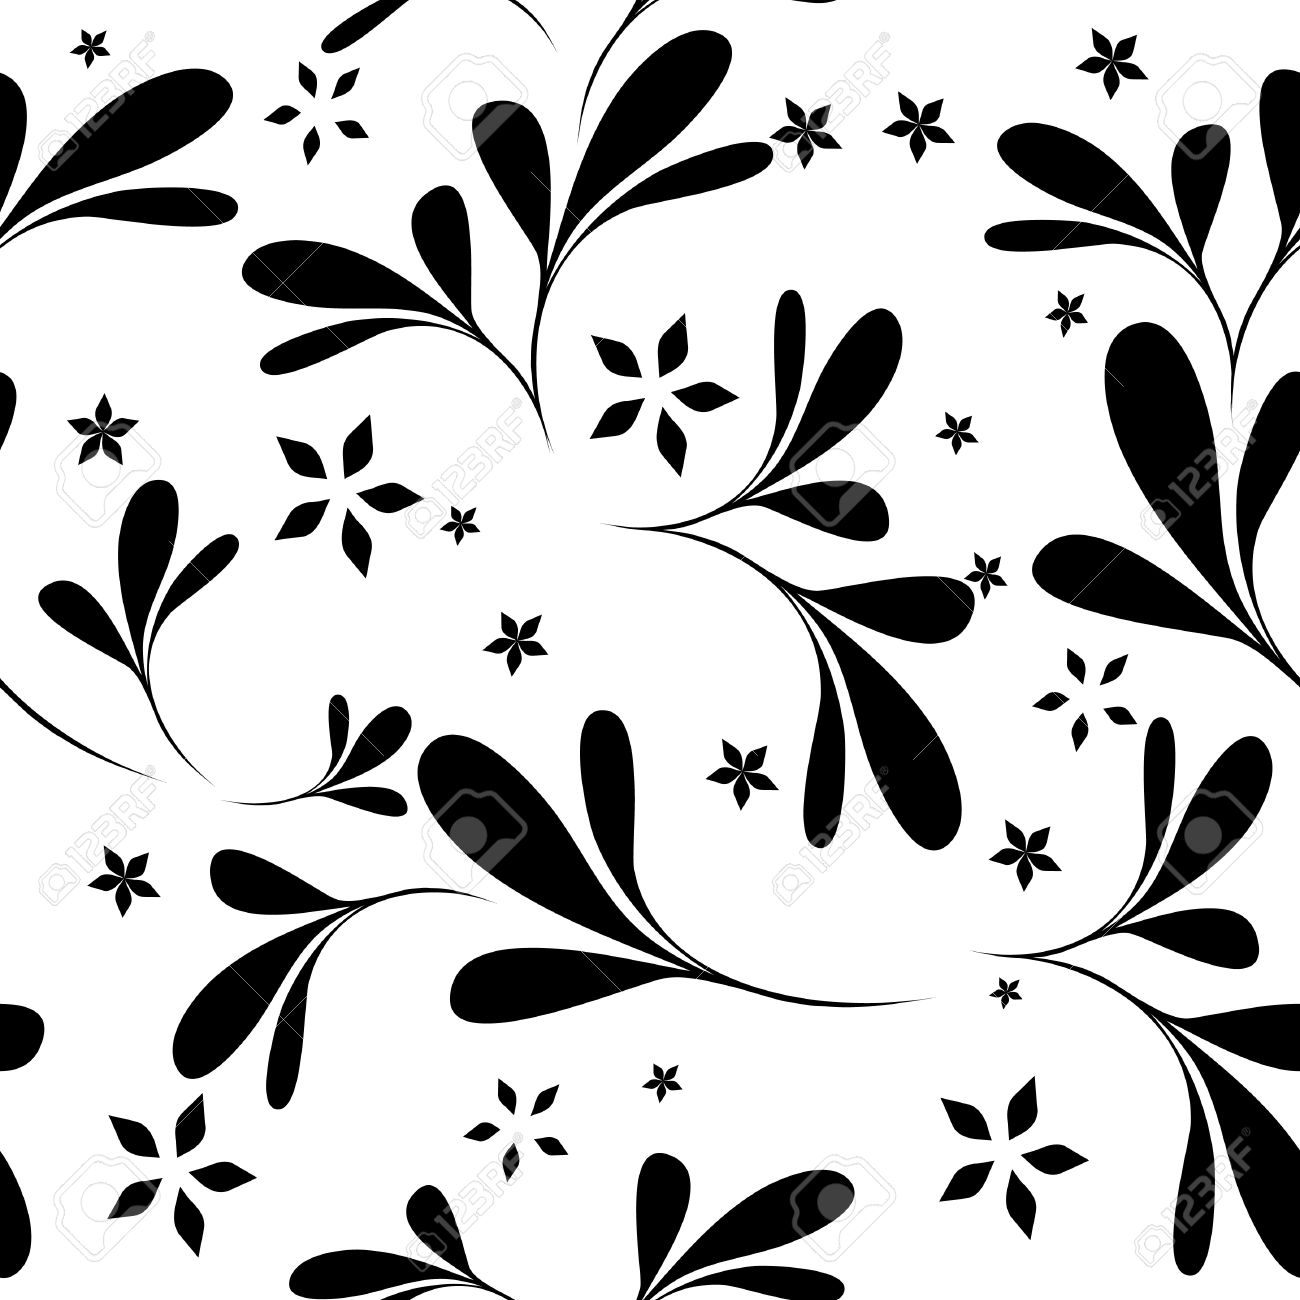 Seamless Black White Flower Wallpaper Royalty Free Cliparts